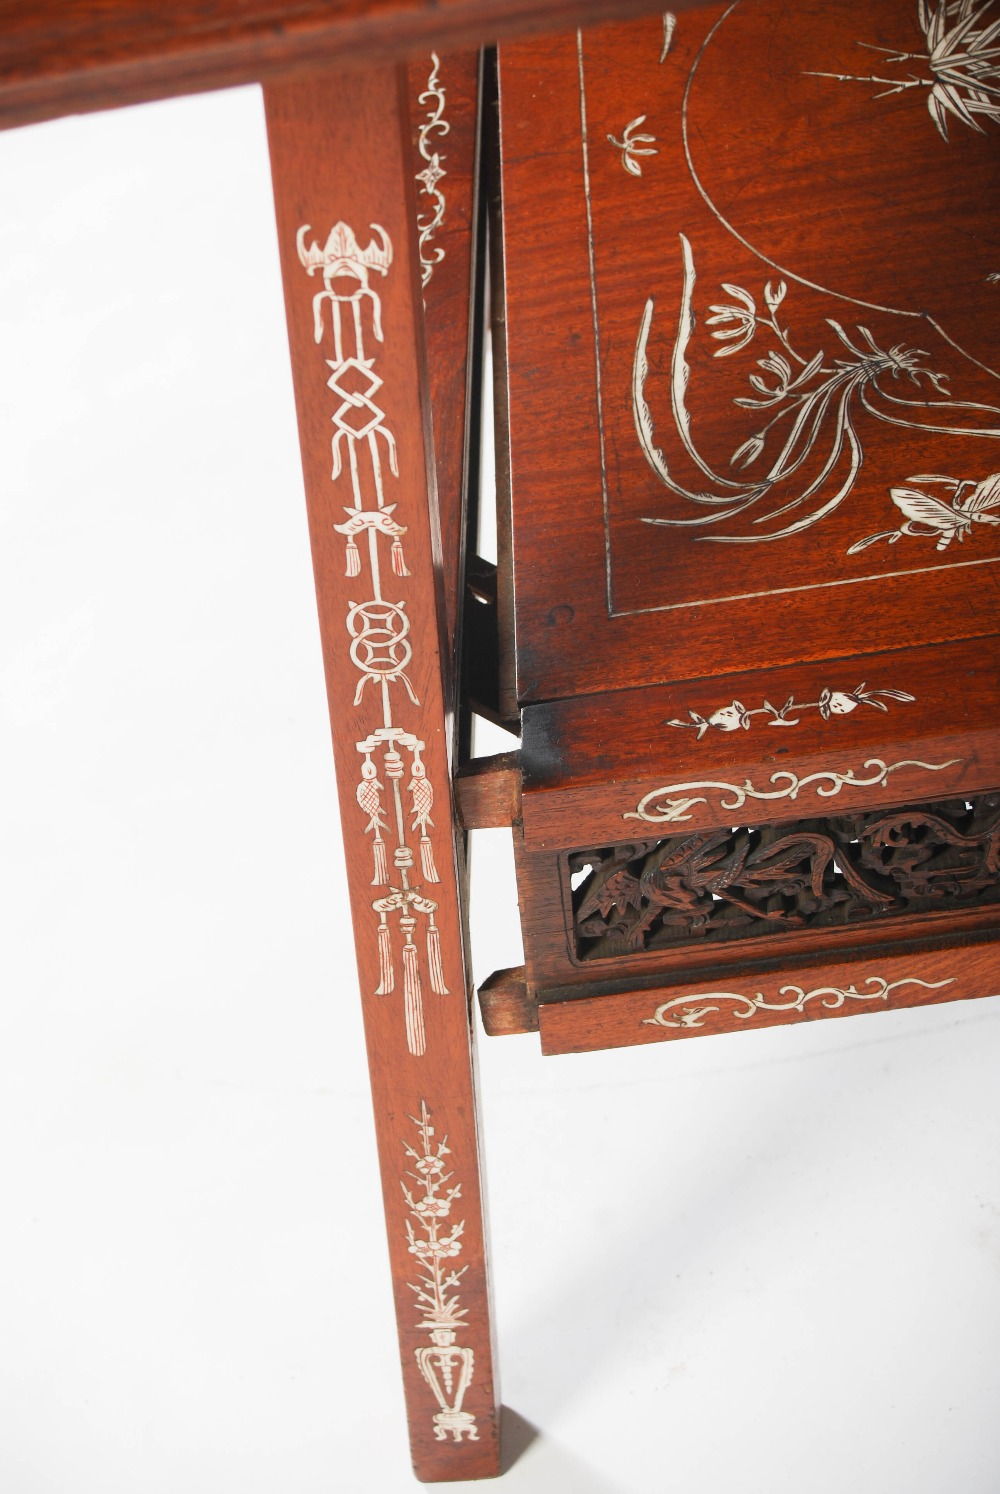 Lot 71 - A Chinese dark wood and ivory inlaid square shaped occasional table, late Qing Dynasty, the square